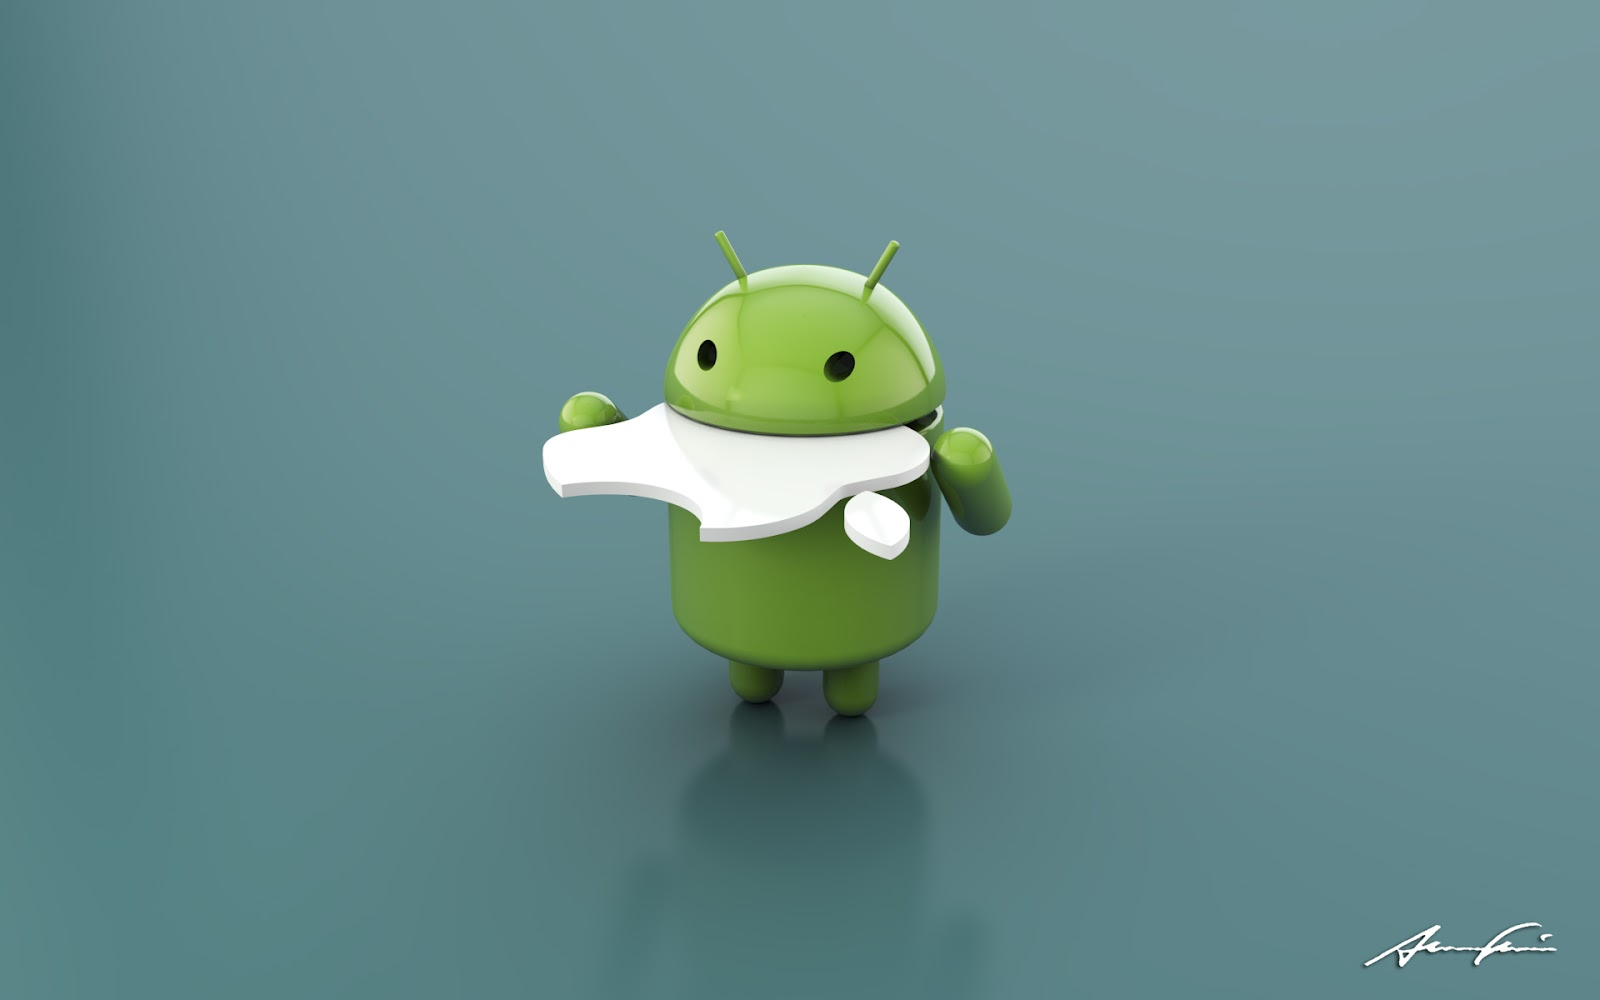 android wallpaper hd